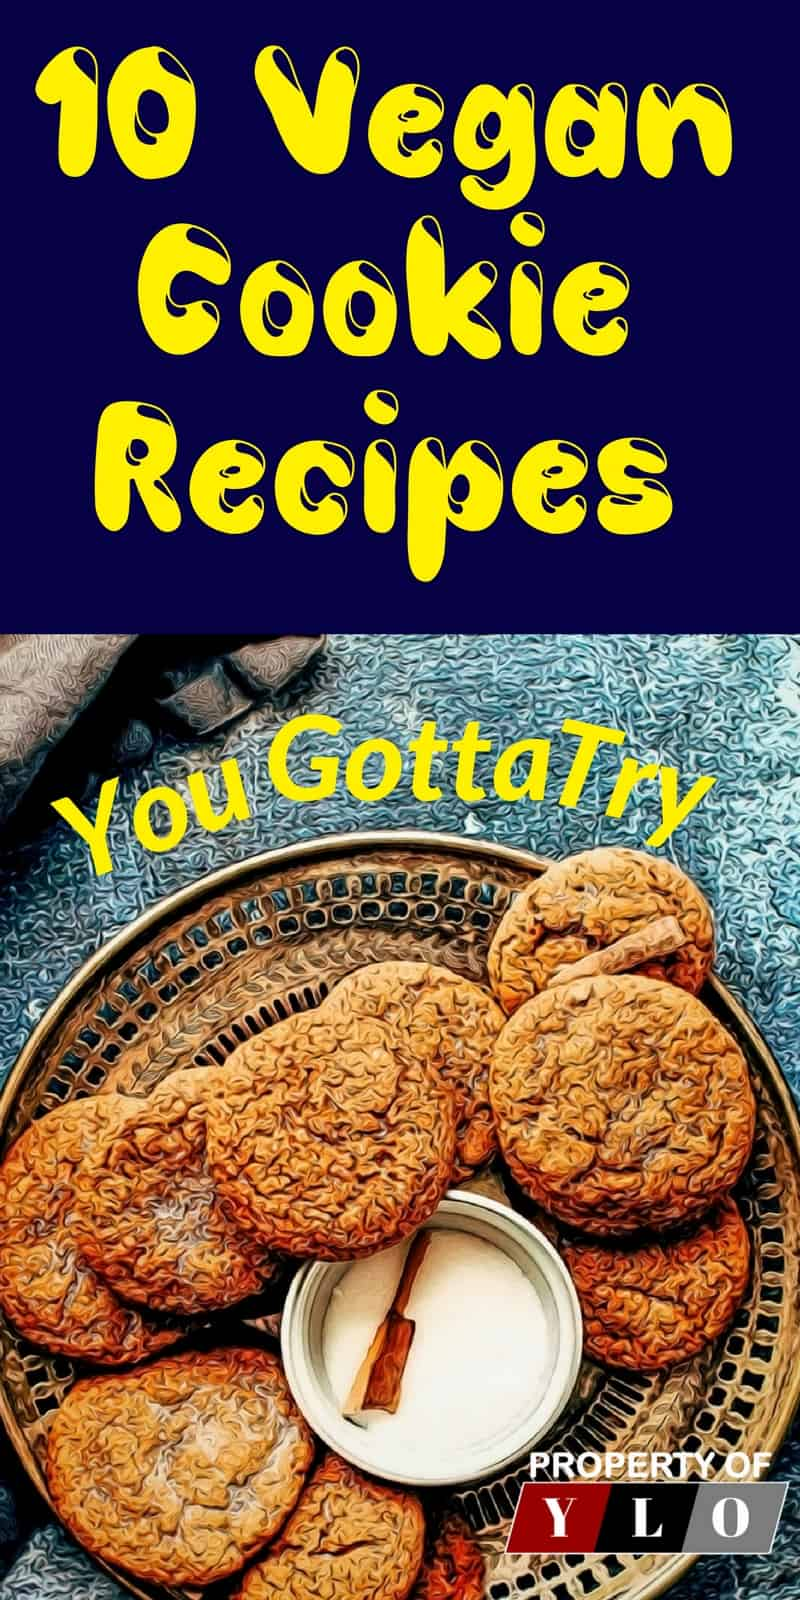 I searched the internet and especially on Pinterest for Vegan Cookie Recipes and after trying bunches of batches, these are 10 of the best recipes I found for Vegan cookies. These are great for a diet, dieting, lose weight, healthy diet, low carb diet, fasting, weight loss, fat loss, diets, weight loss diet, lose weight diet, vegan, vegetarian, cookies, cookie recipes, Weight Loss, Fat Burning, lose fat, Quick weight loss, diet, dieting, weight loss diet, lowcarb diet.